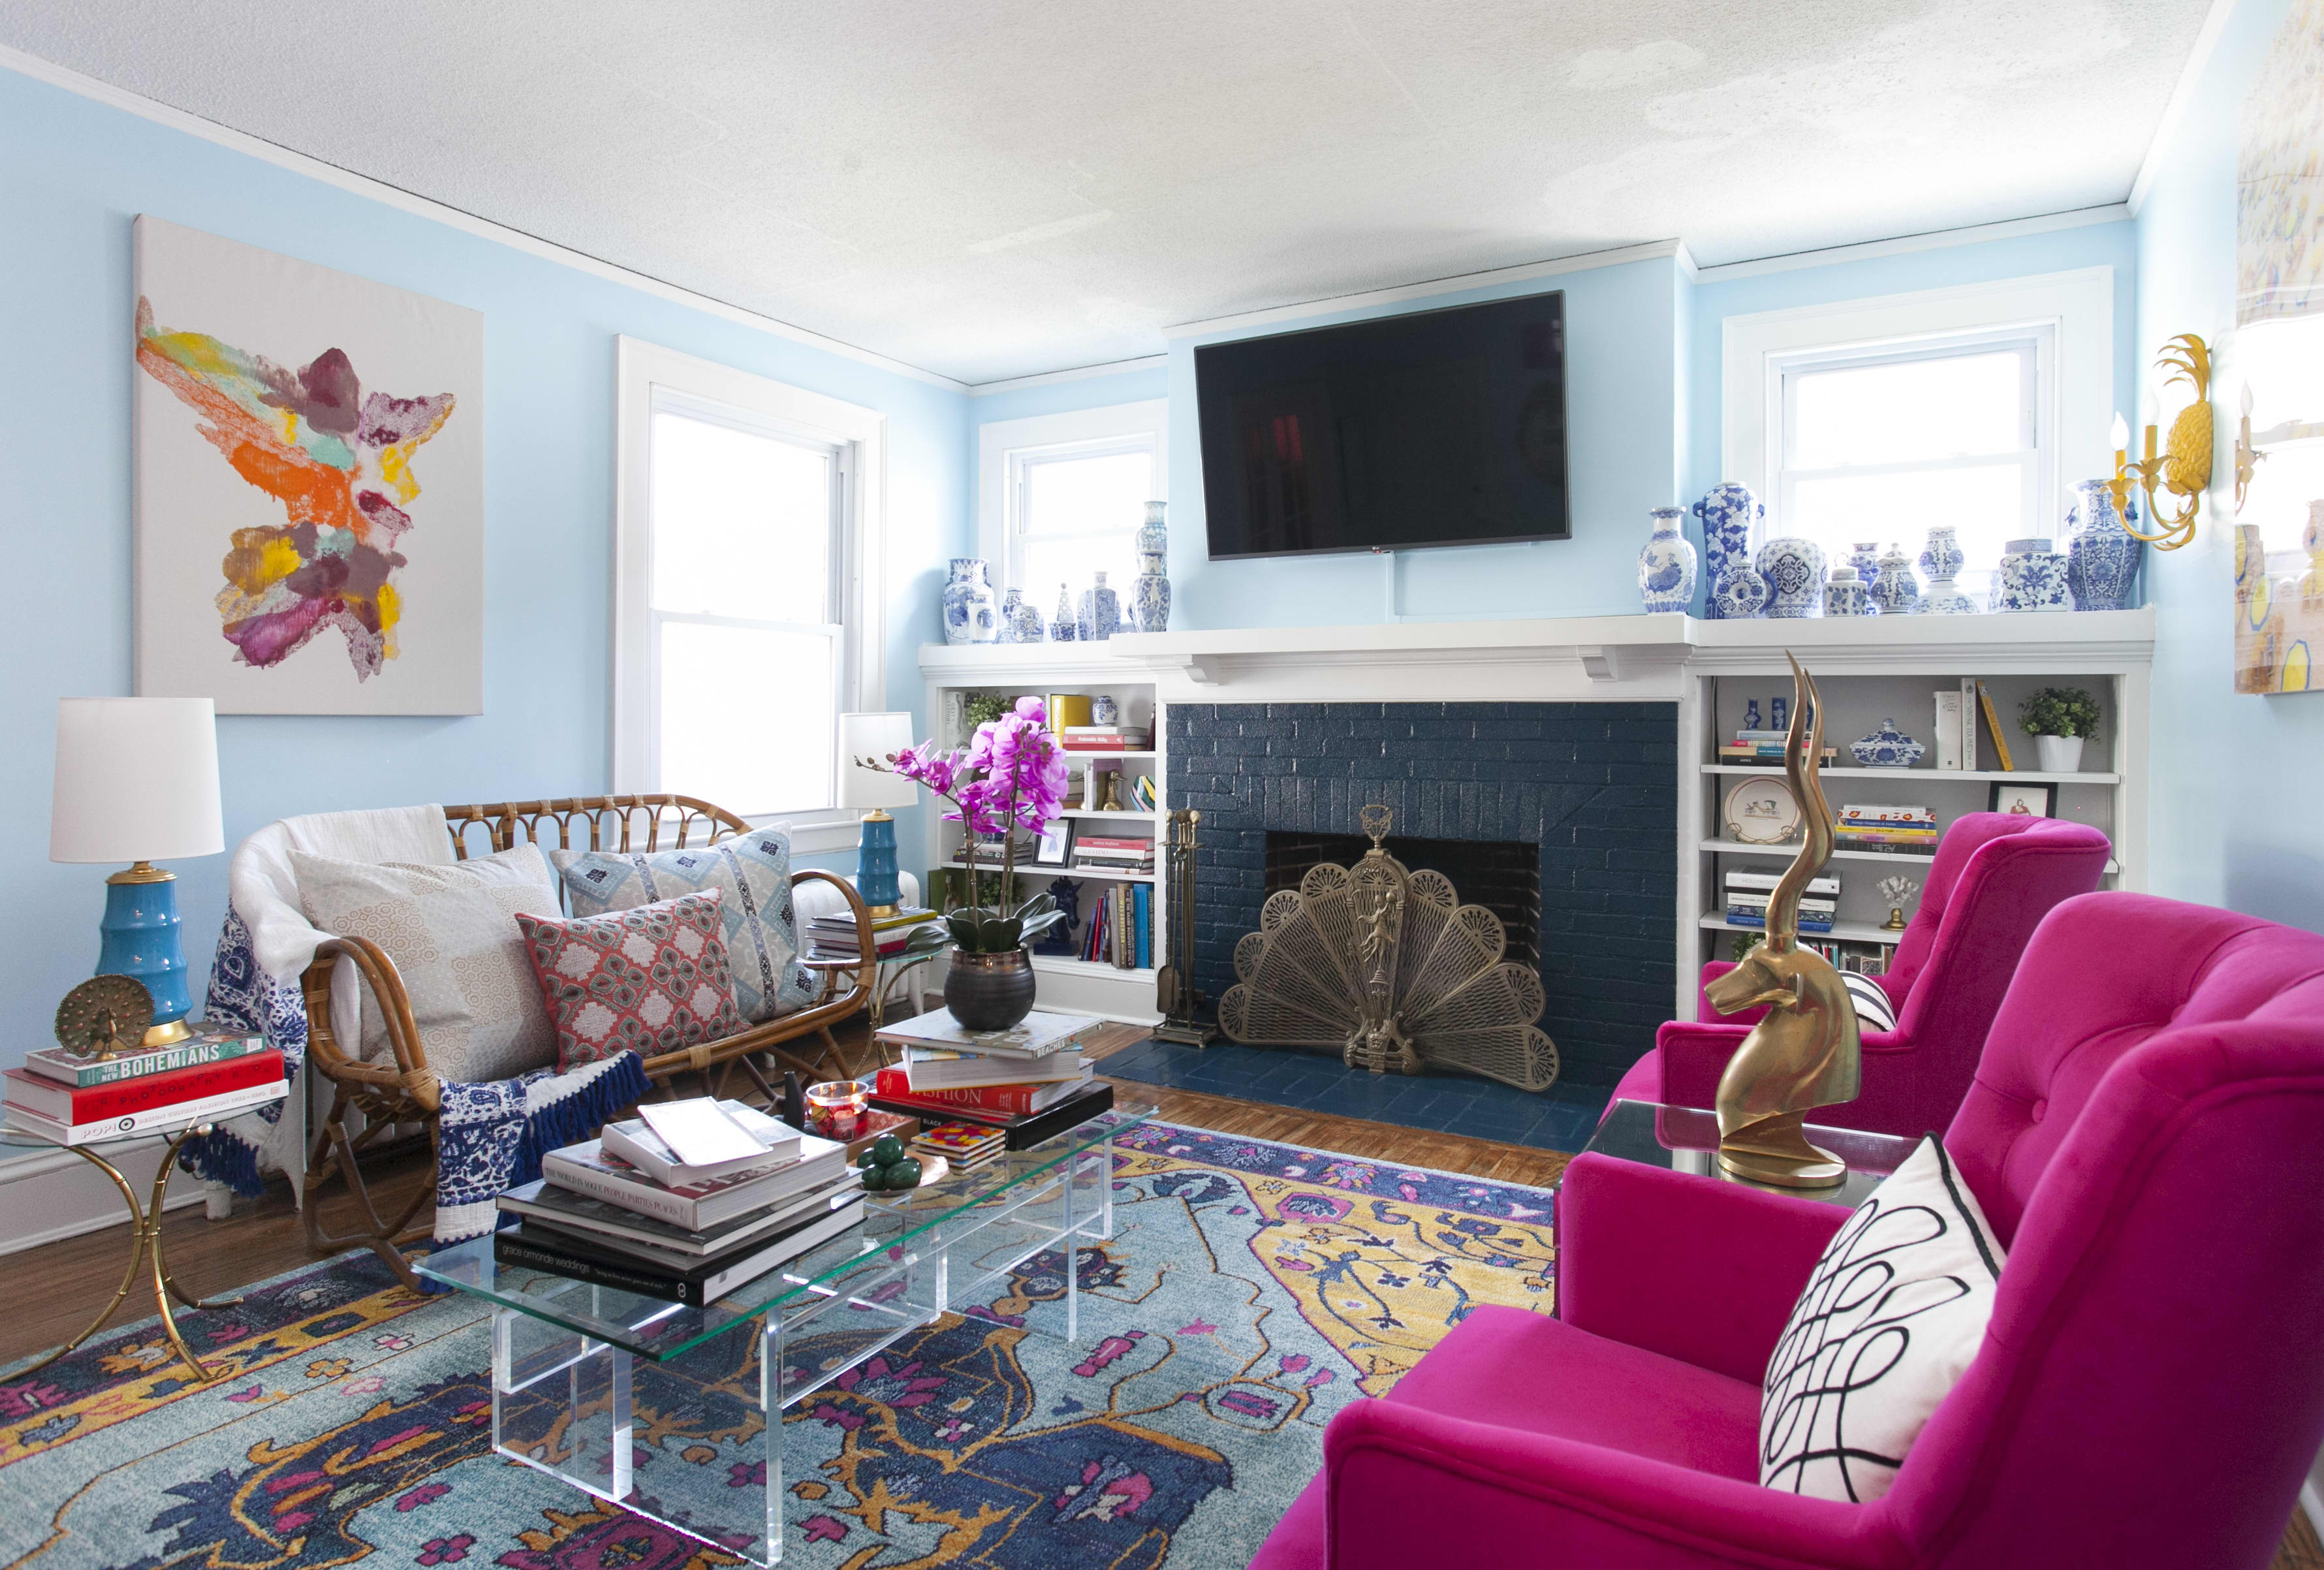 How To Decorate Your Home With Bright Cheery Colors